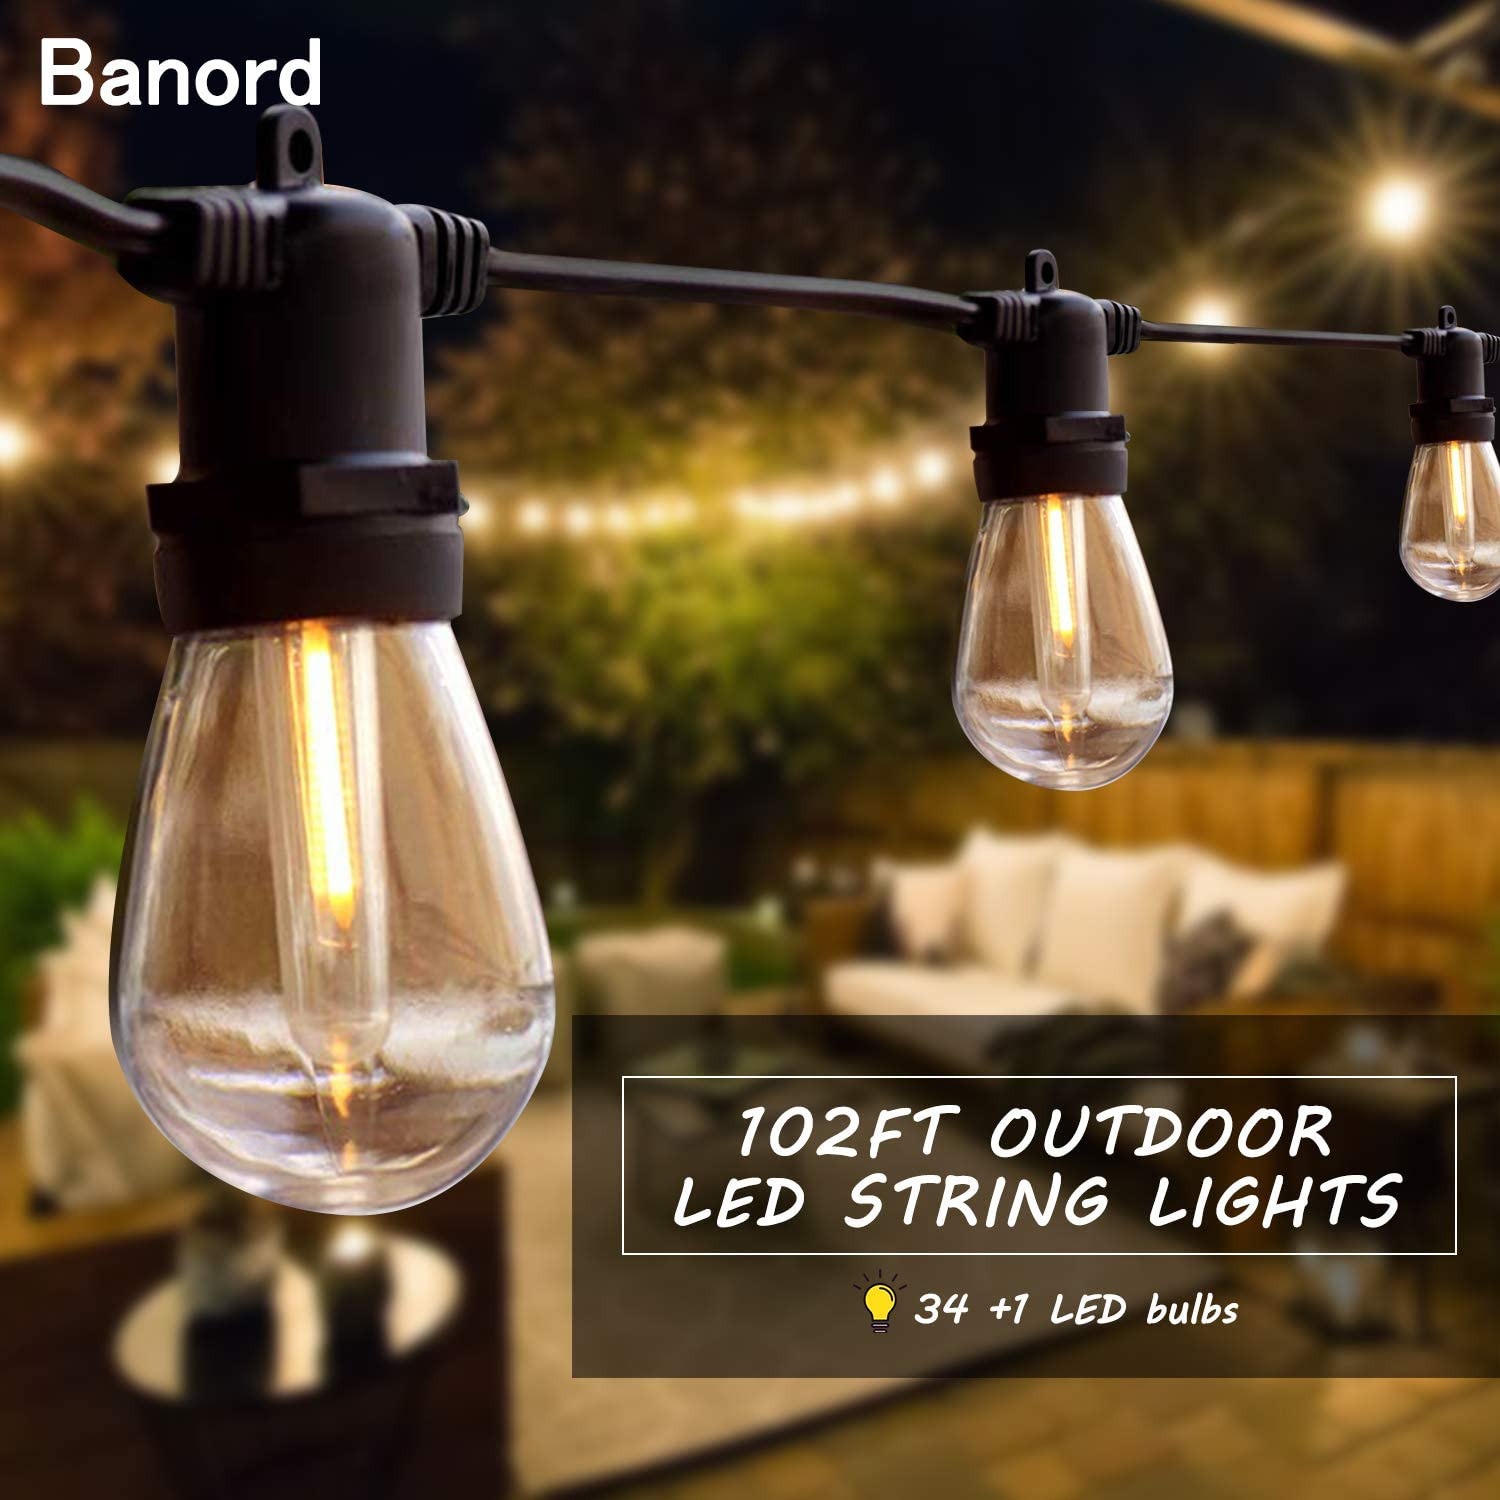 Banord 51FT Outdoor Shatterproof LED String Lights, Waterproof 17 Hanging Sockets with 18 x Dimmable LED Bulb Garden Light String, Waterproof Vintage Patio Lights for Wedding Party : Garden & Outdoor